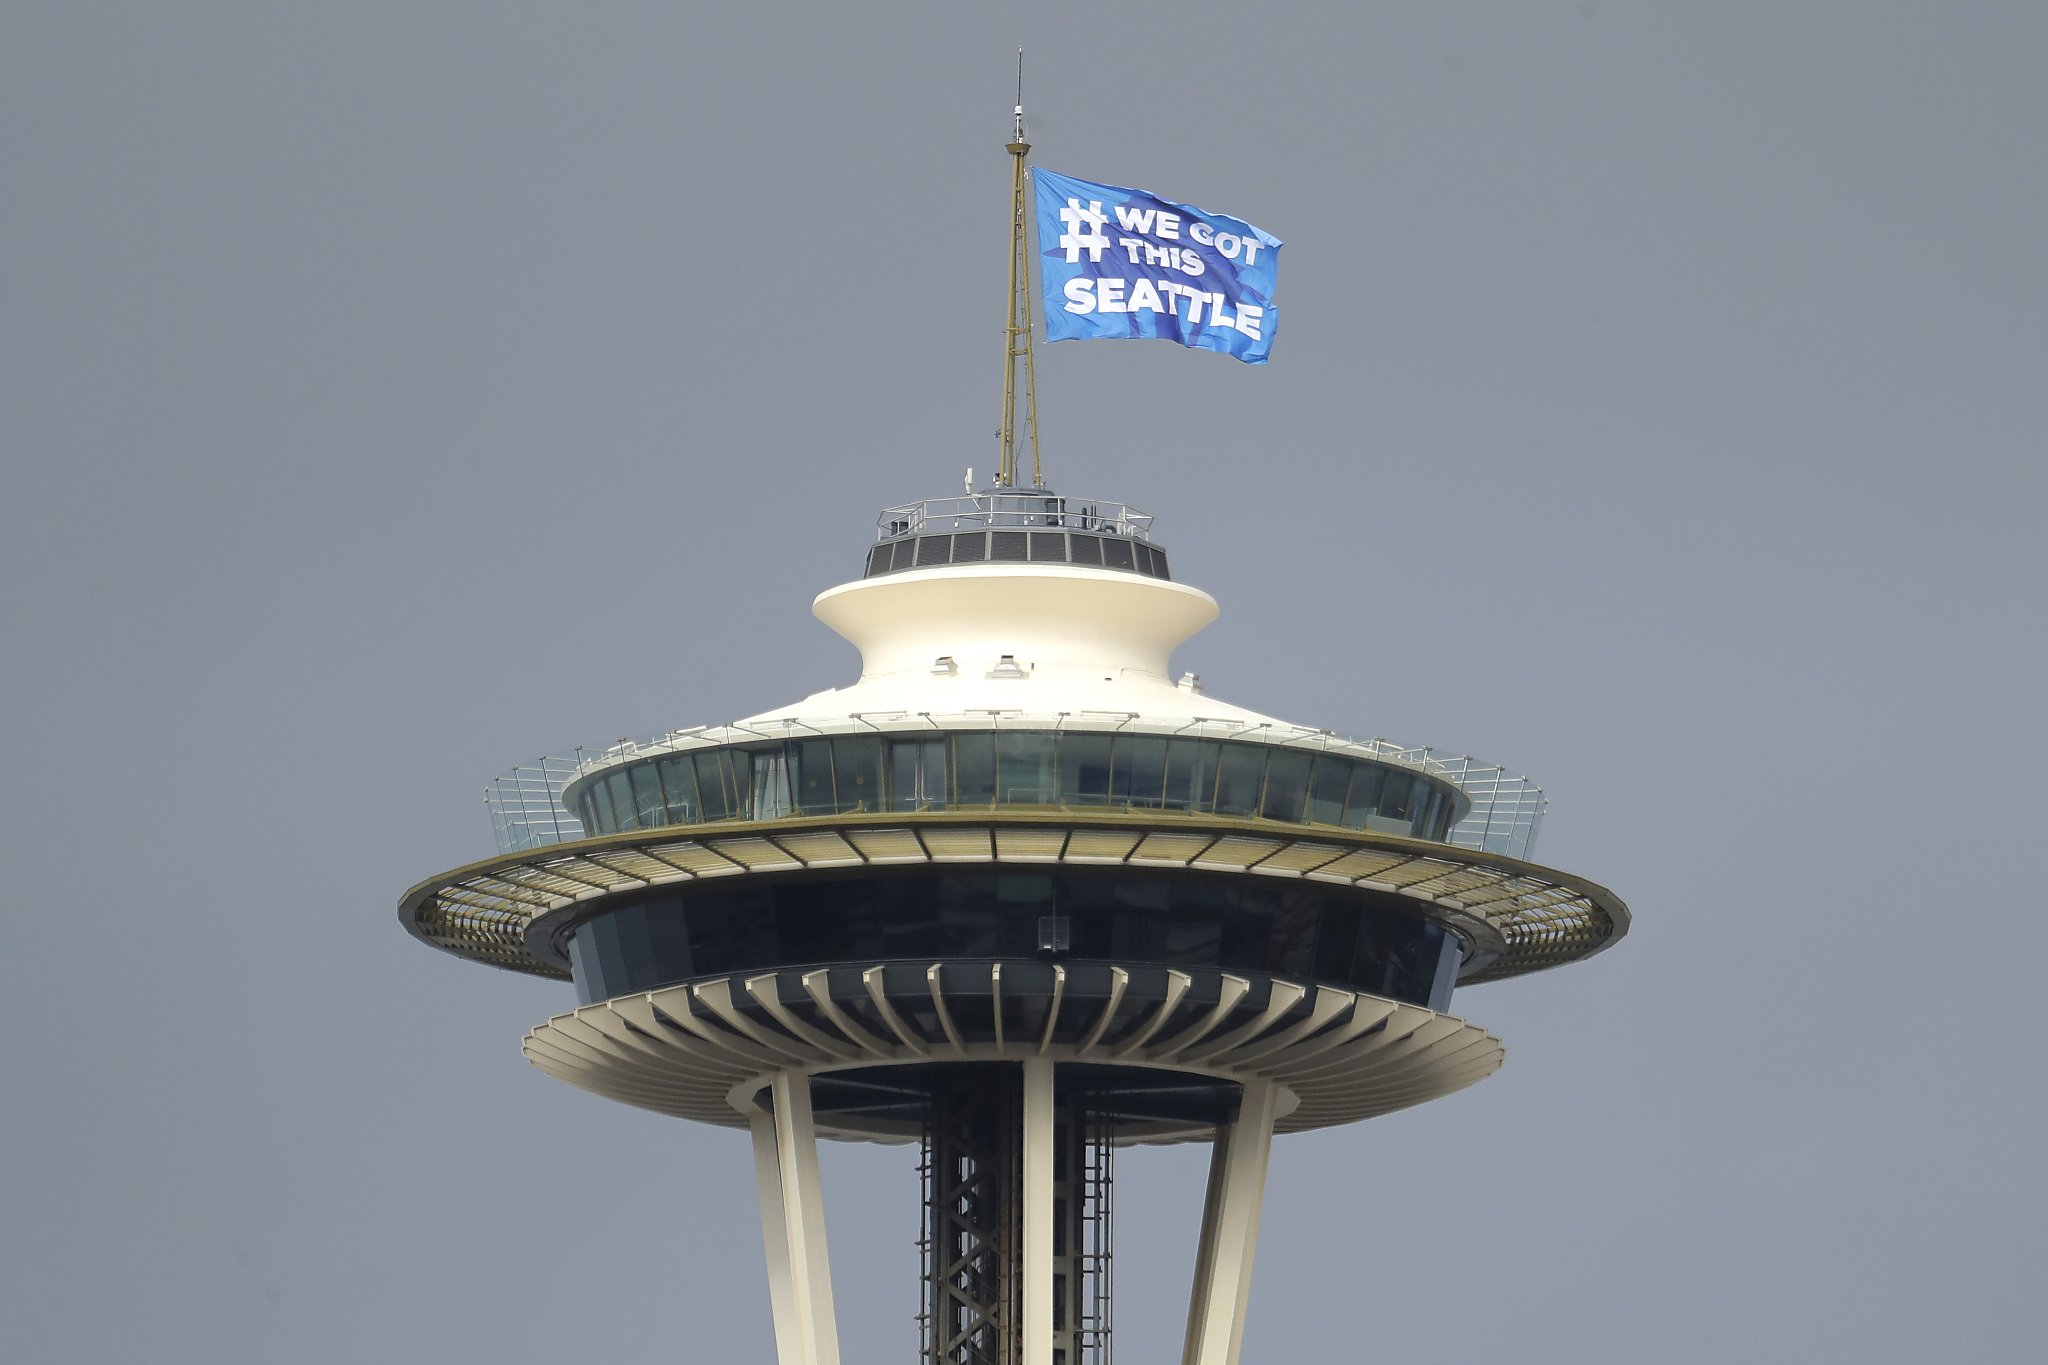 Space Needle reopens Monday with new technology, enhanced cleaning measures